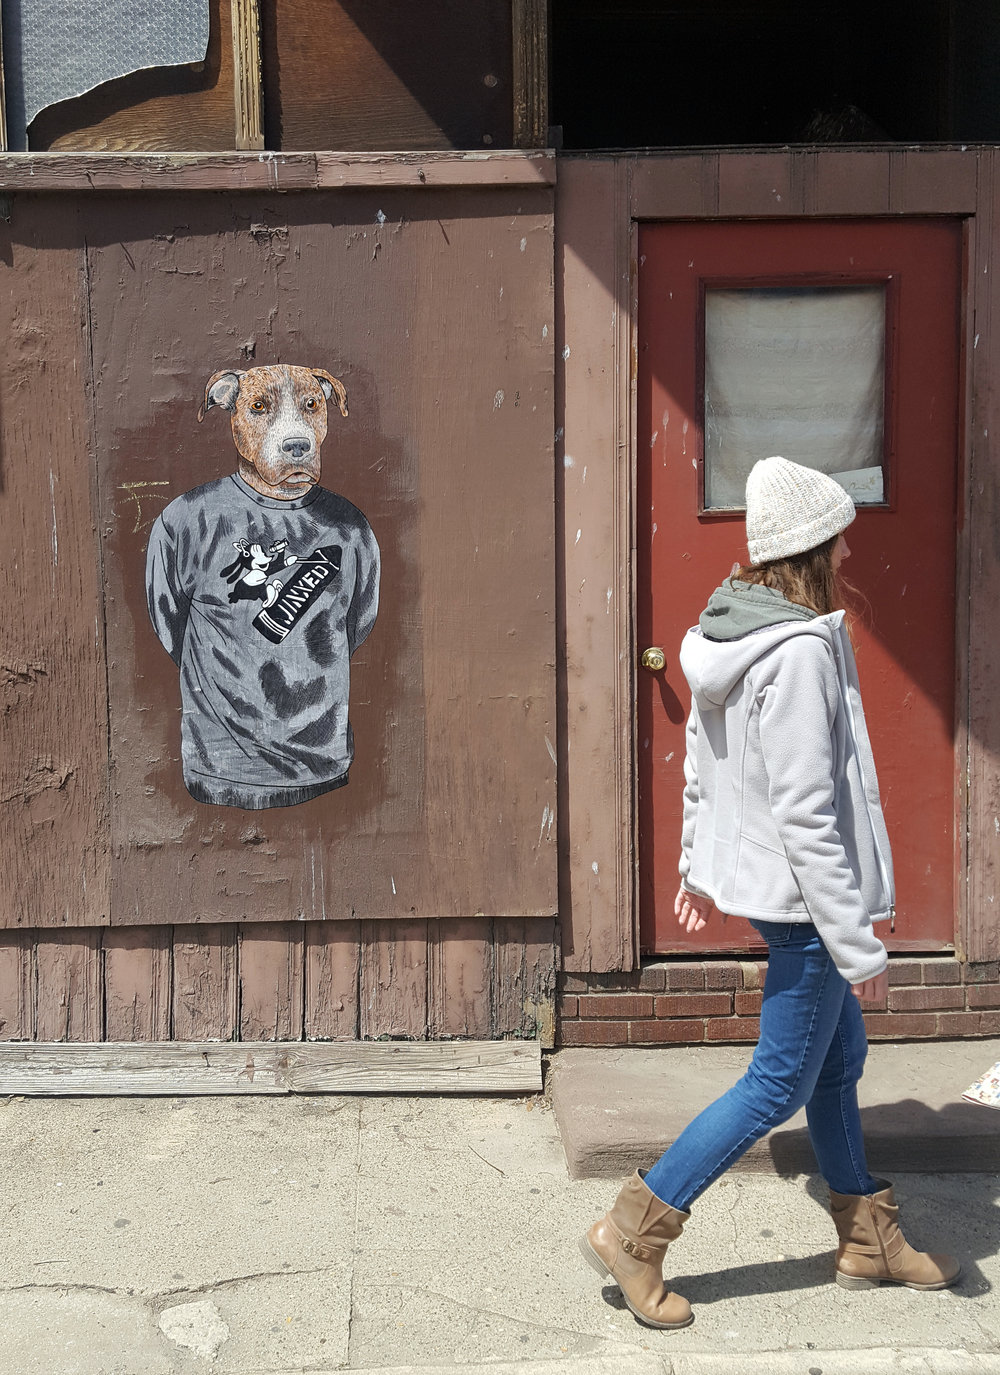 Mike in Port Richmond. 2018